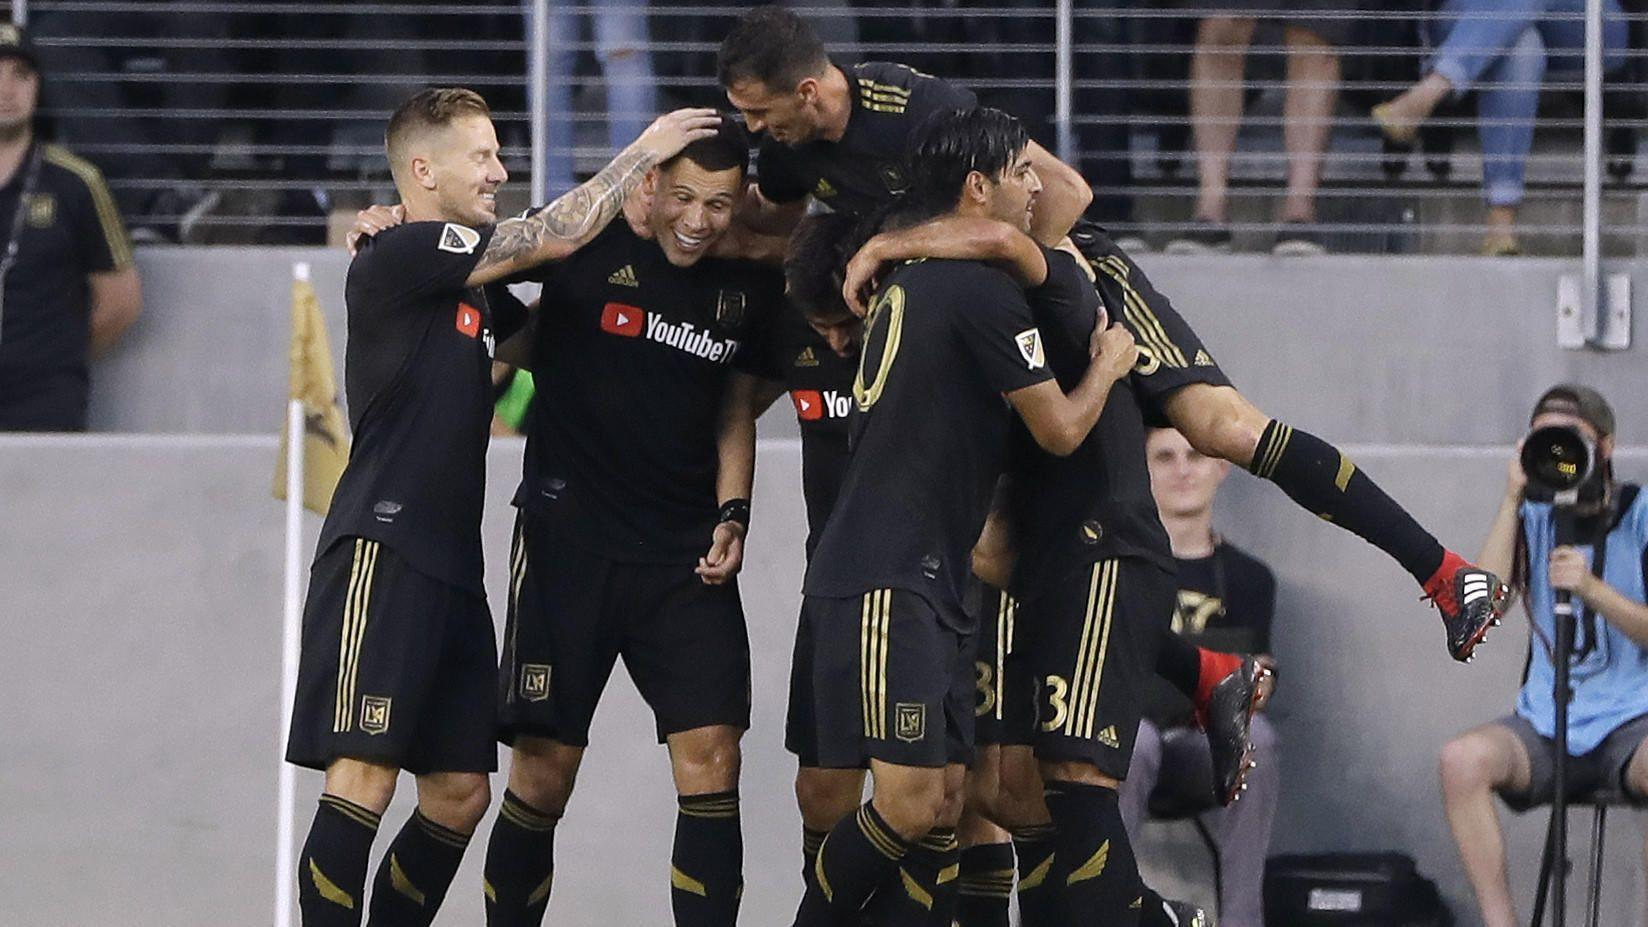 LAFC victory over Dynamo has some postseason implications